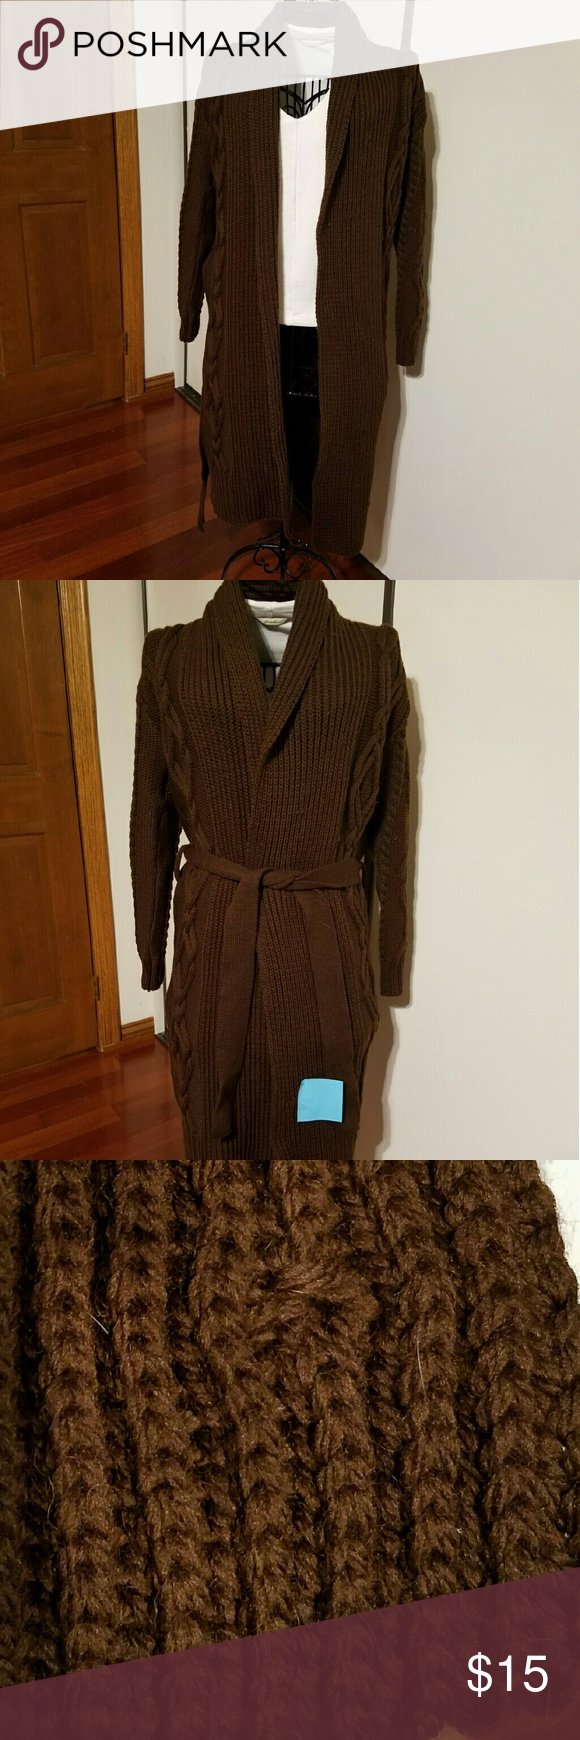 💙💙 Two for $10. Wool sweater coat, brown | Brand new, Ships and ...